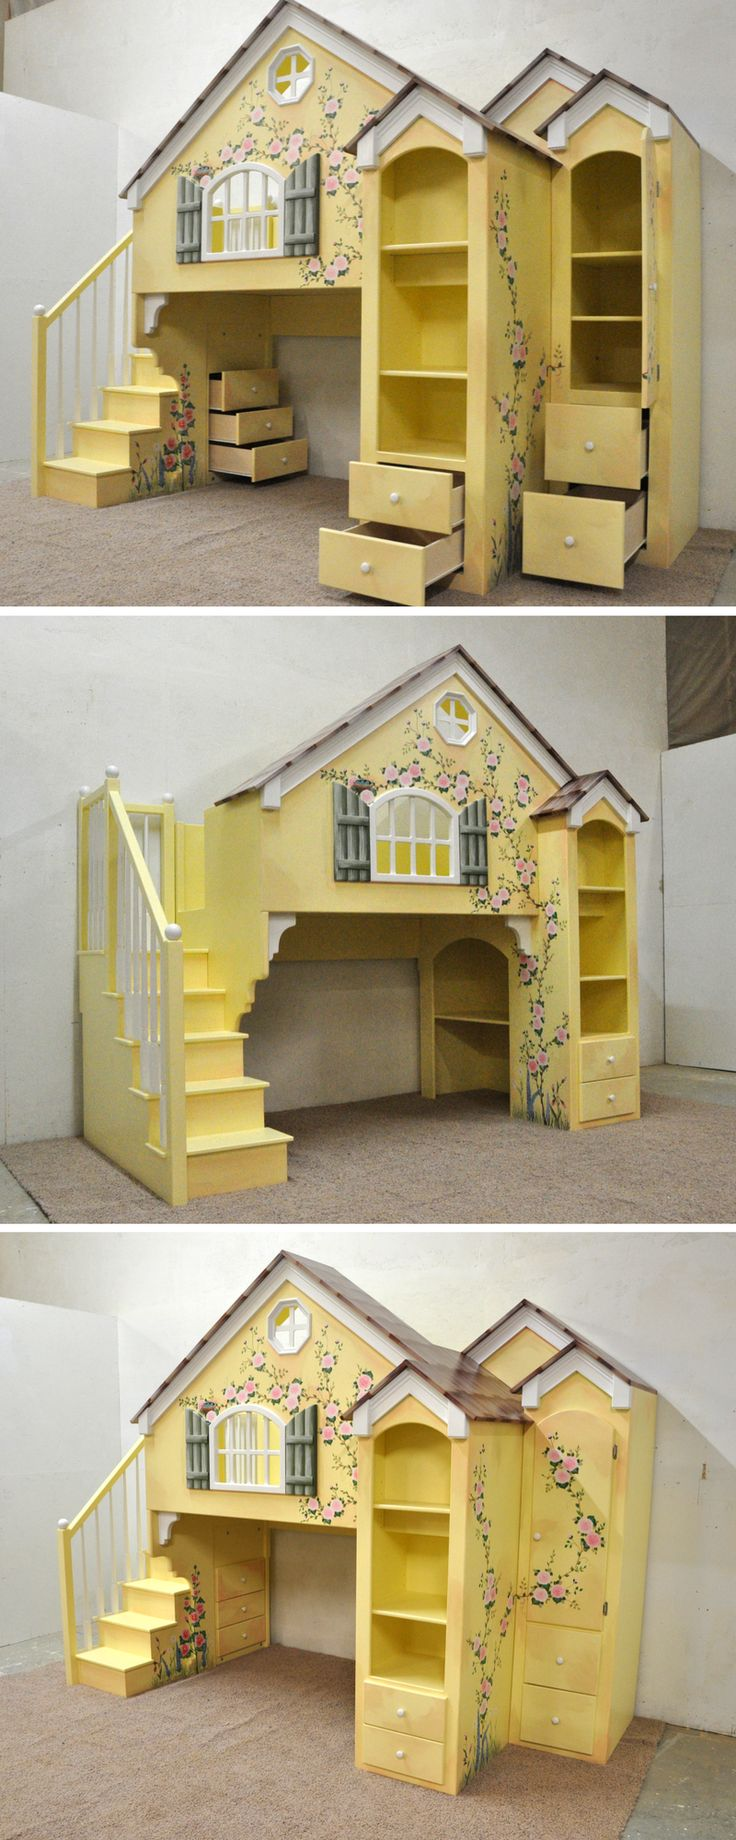 Our Dollhouse Loft Bed is by far our most popular design. And we love to make them exactly how you want it! Take this custom Dollhouse, for example. In addition to the custom hand painting, we added tons of custom storage space, two extra gables, and a full desk in the lower bunk. Click to see more custom Dollhouse designs!